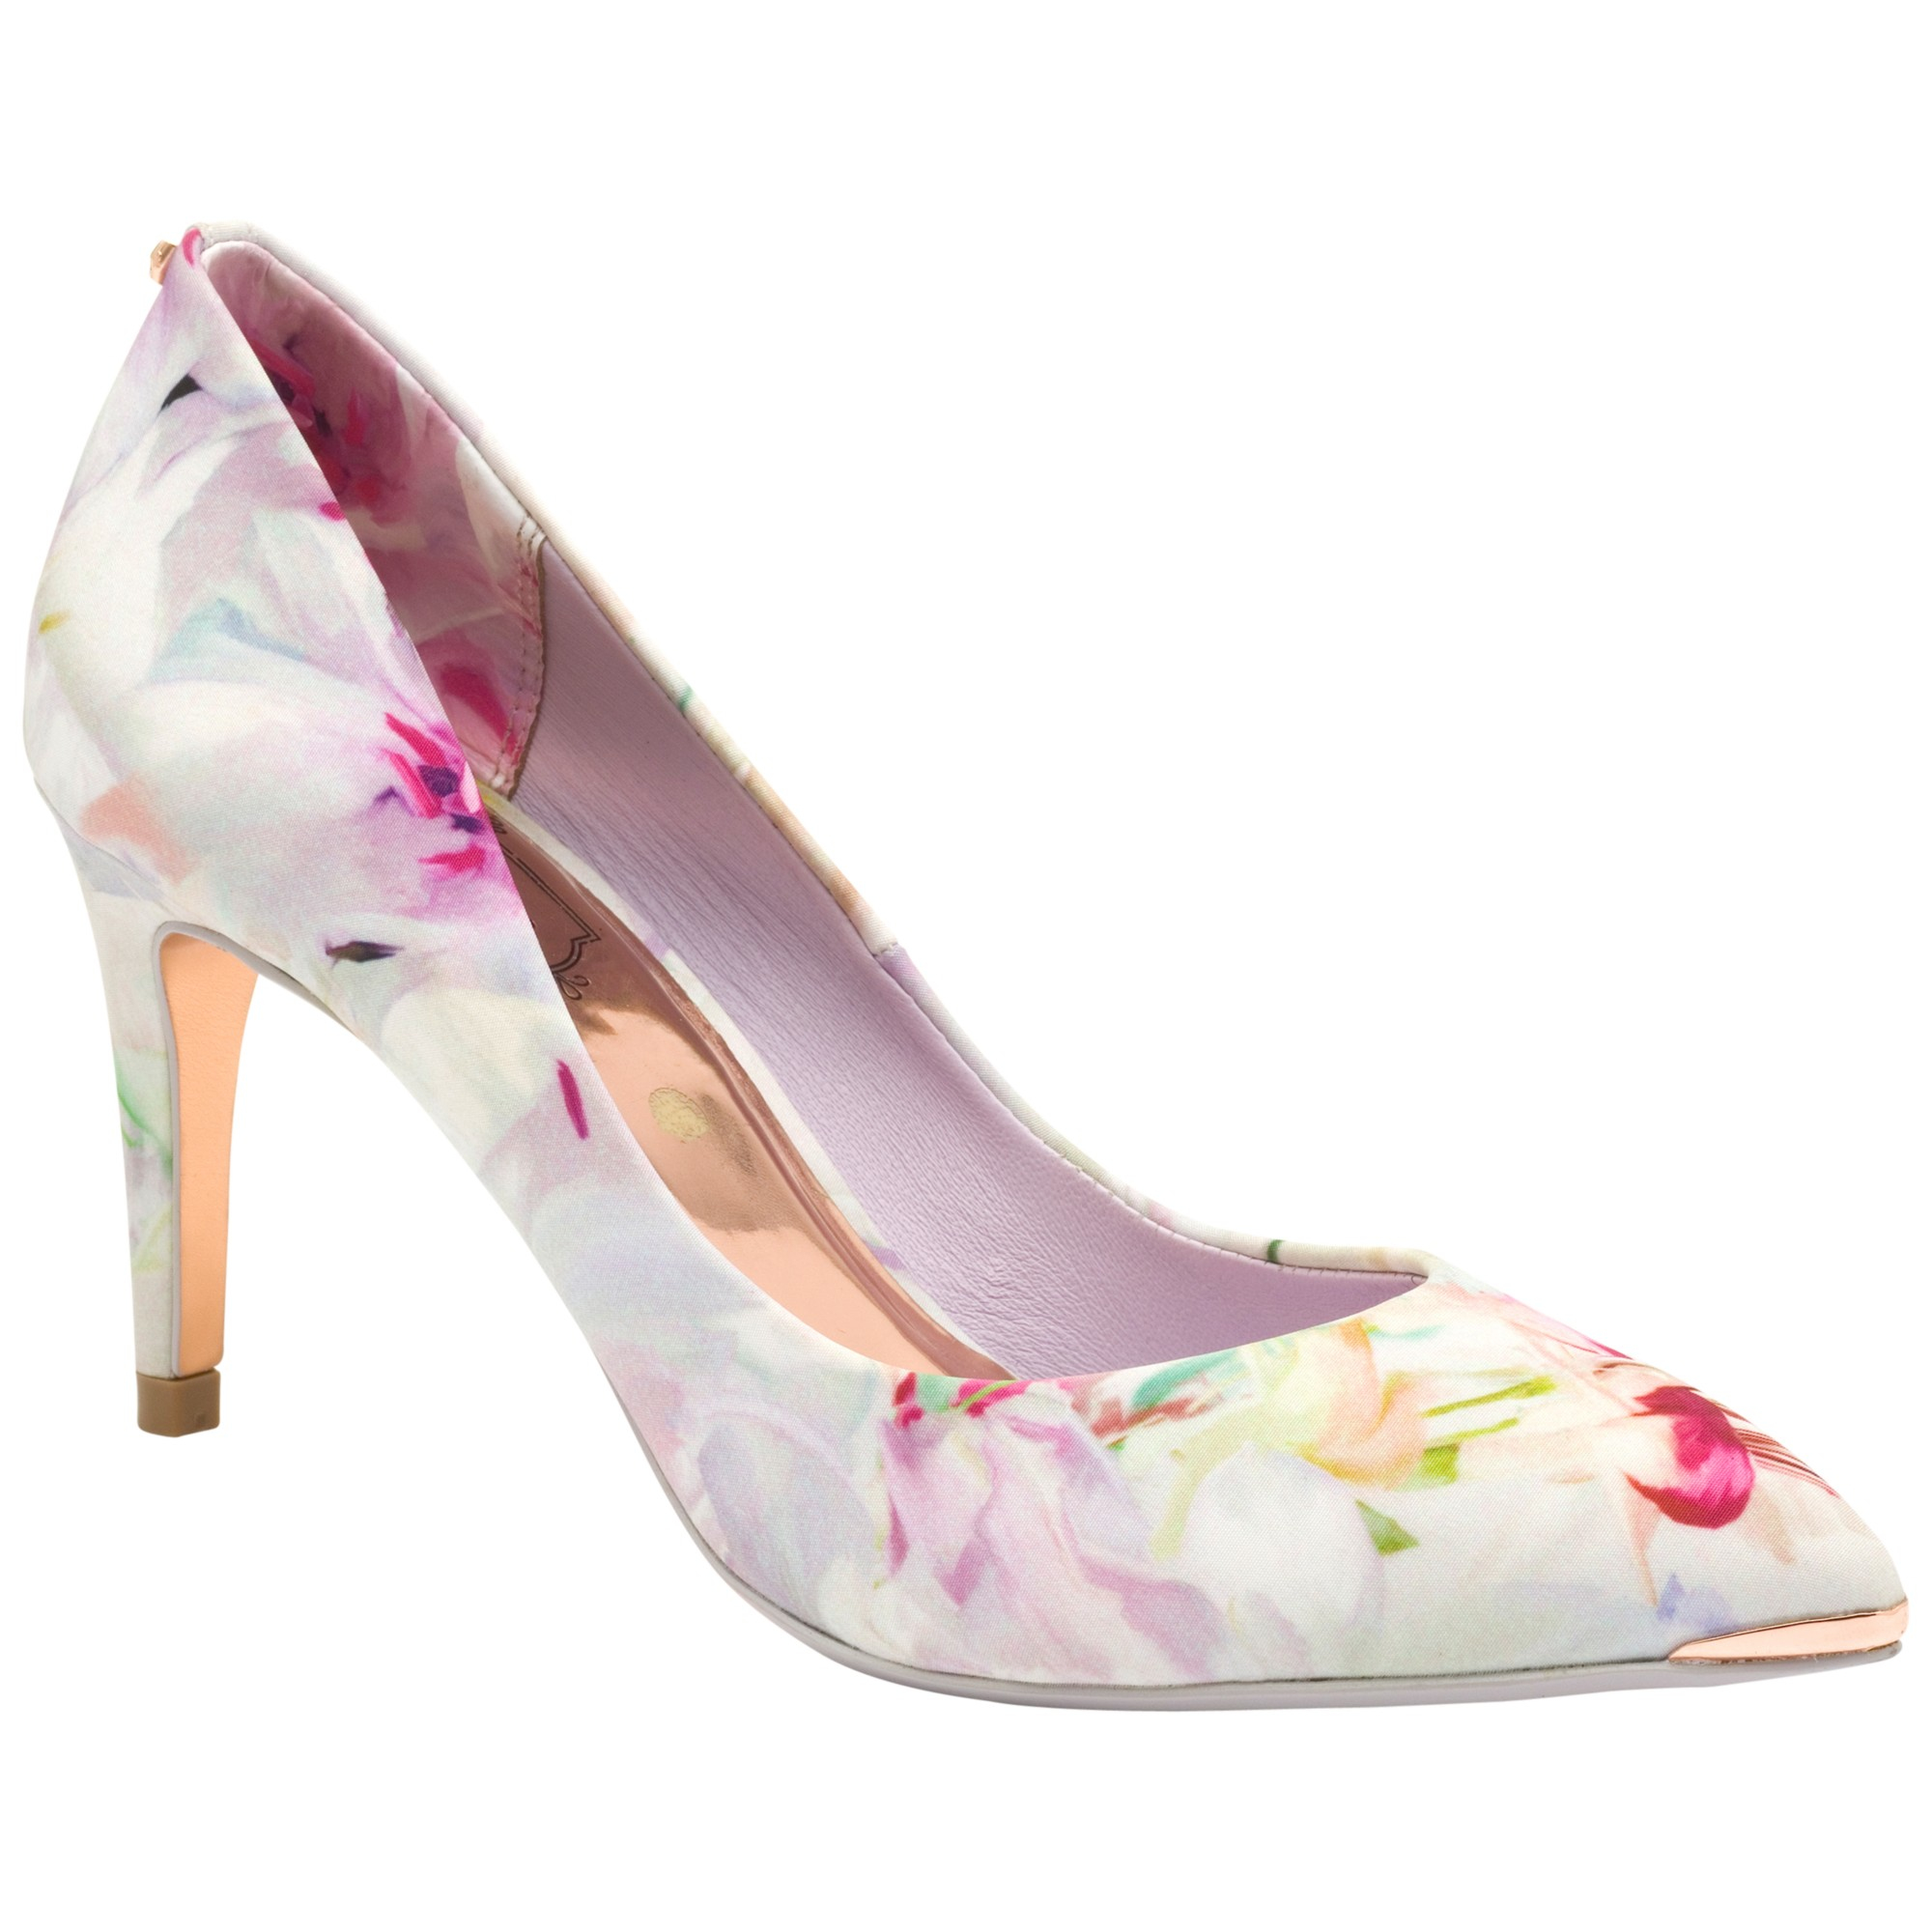 38594de902 Ted Baker Charmesa Floral Print Pointed Court Shoes - Lyst